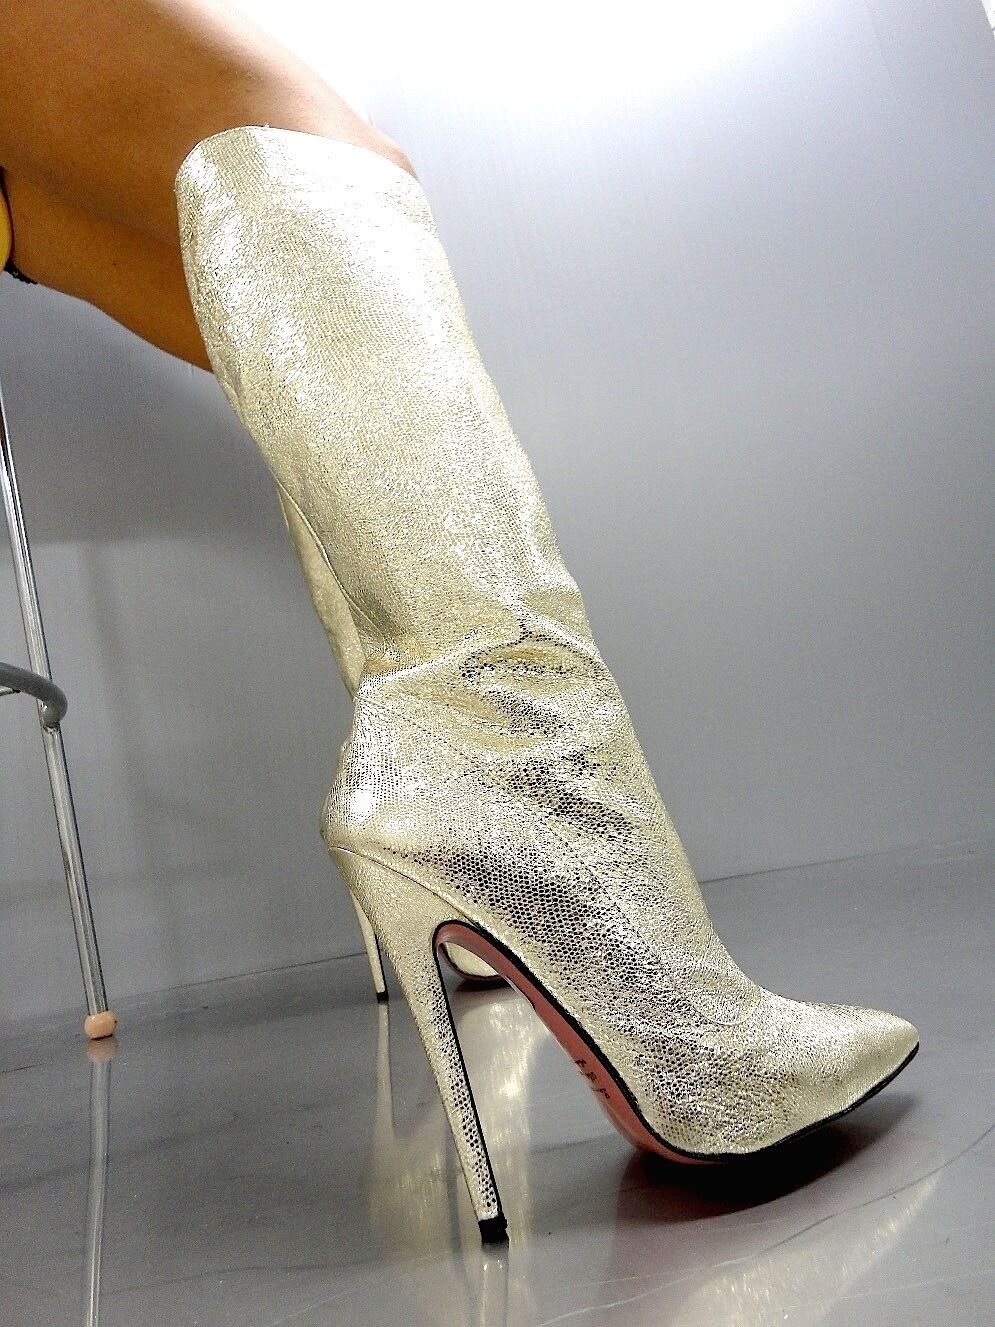 MORI MADE MADE MADE IN ITALY KNEE HIGH SEXY Stiefel STIEFEL STIVALI LEATHER GOLD PLATINO 45 59d9f2